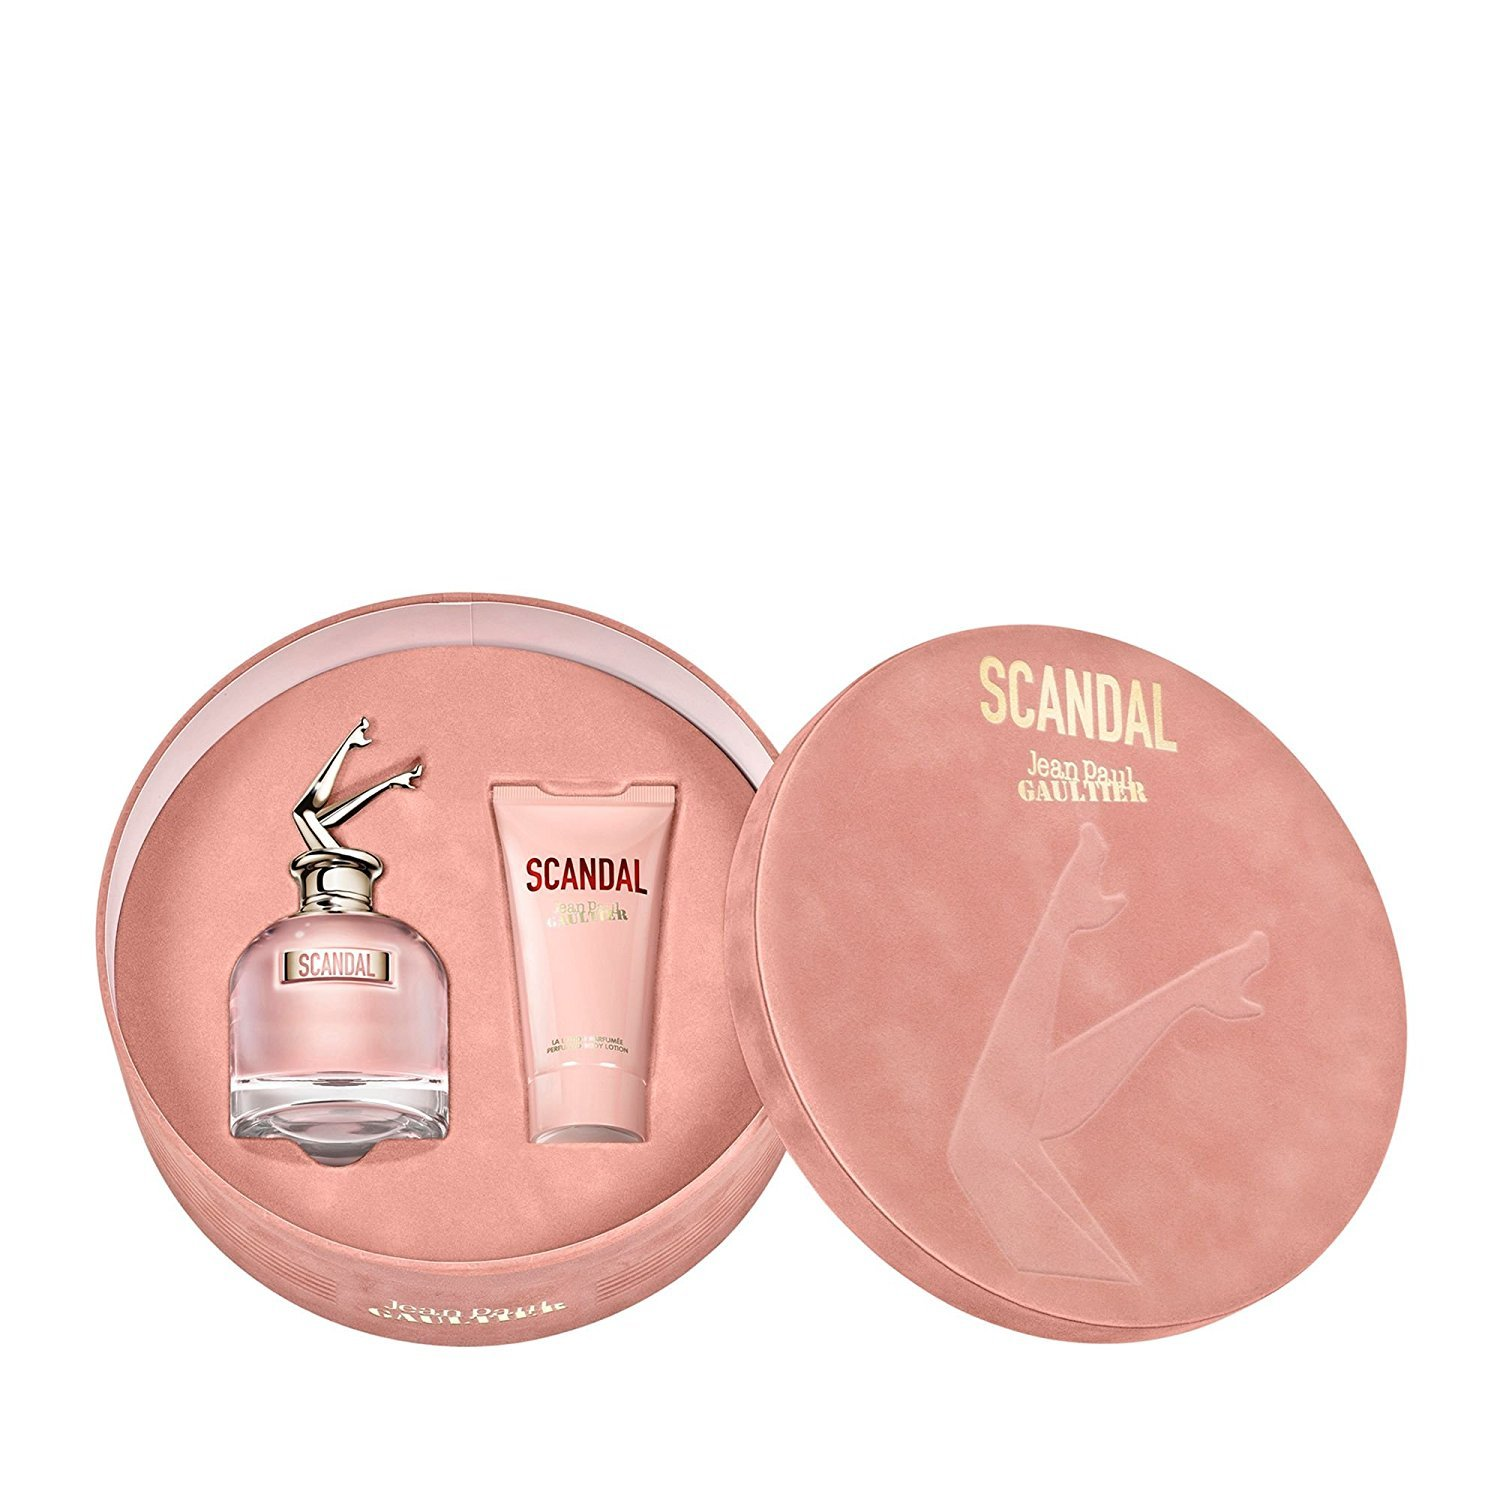 Jean Paul Gaultier Scandal Set (2.5 Eau De Parfum + 2.5 Body Lotion)